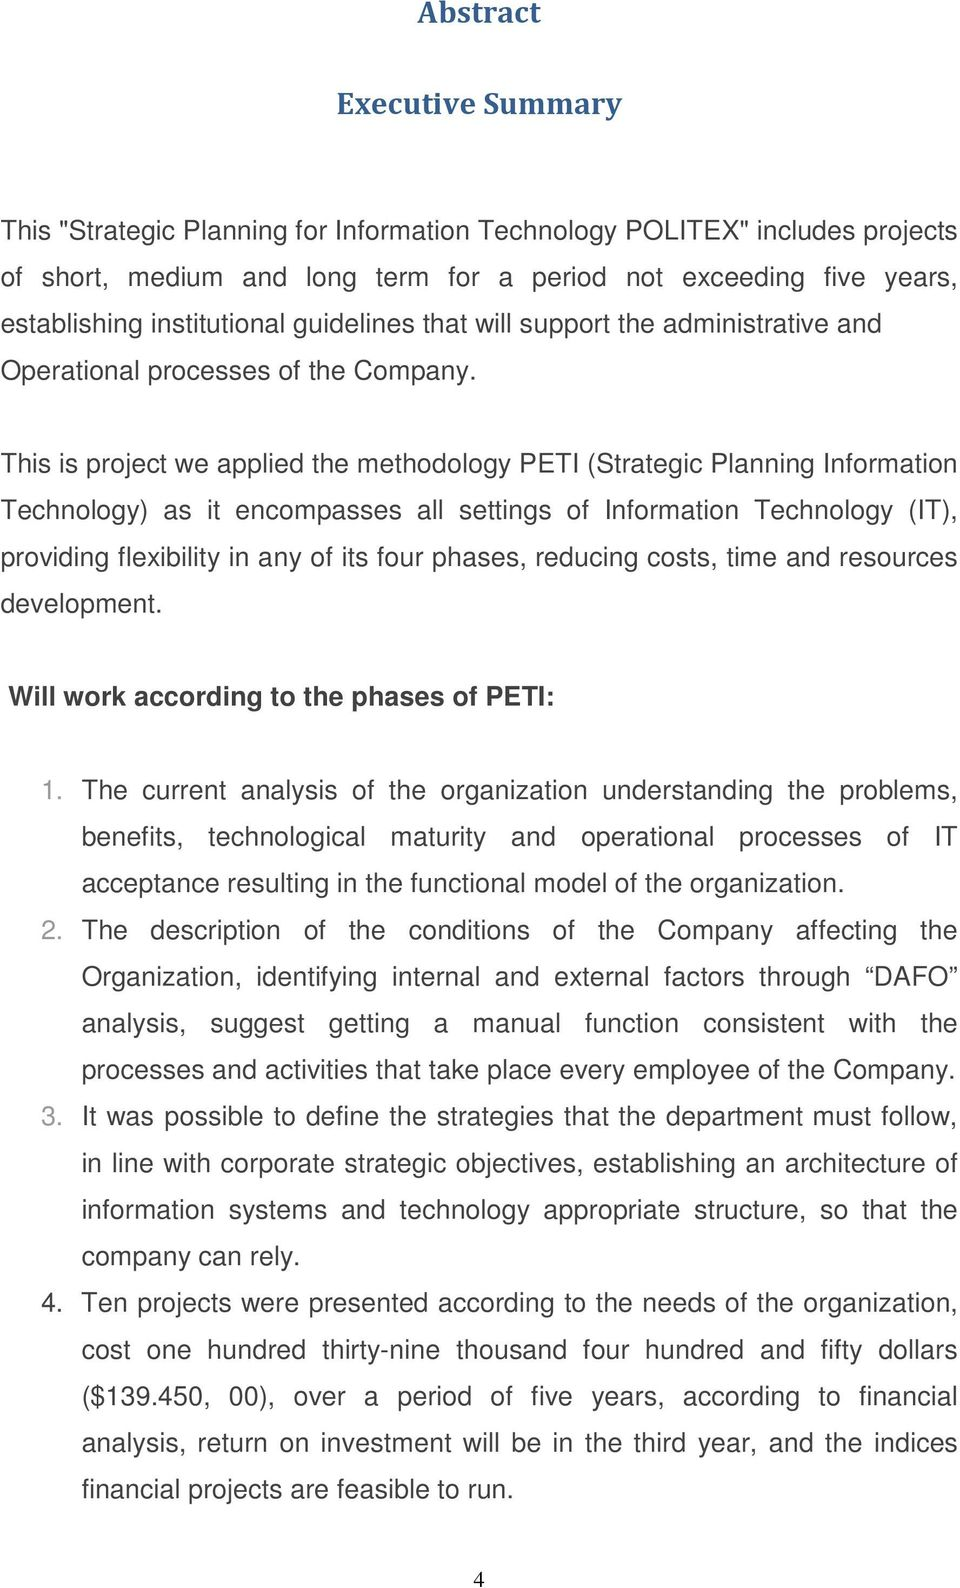 This is project we applied the methodology PETI (Strategic Planning Information Technology) as it encompasses all settings of Information Technology (IT), providing flexibility in any of its four